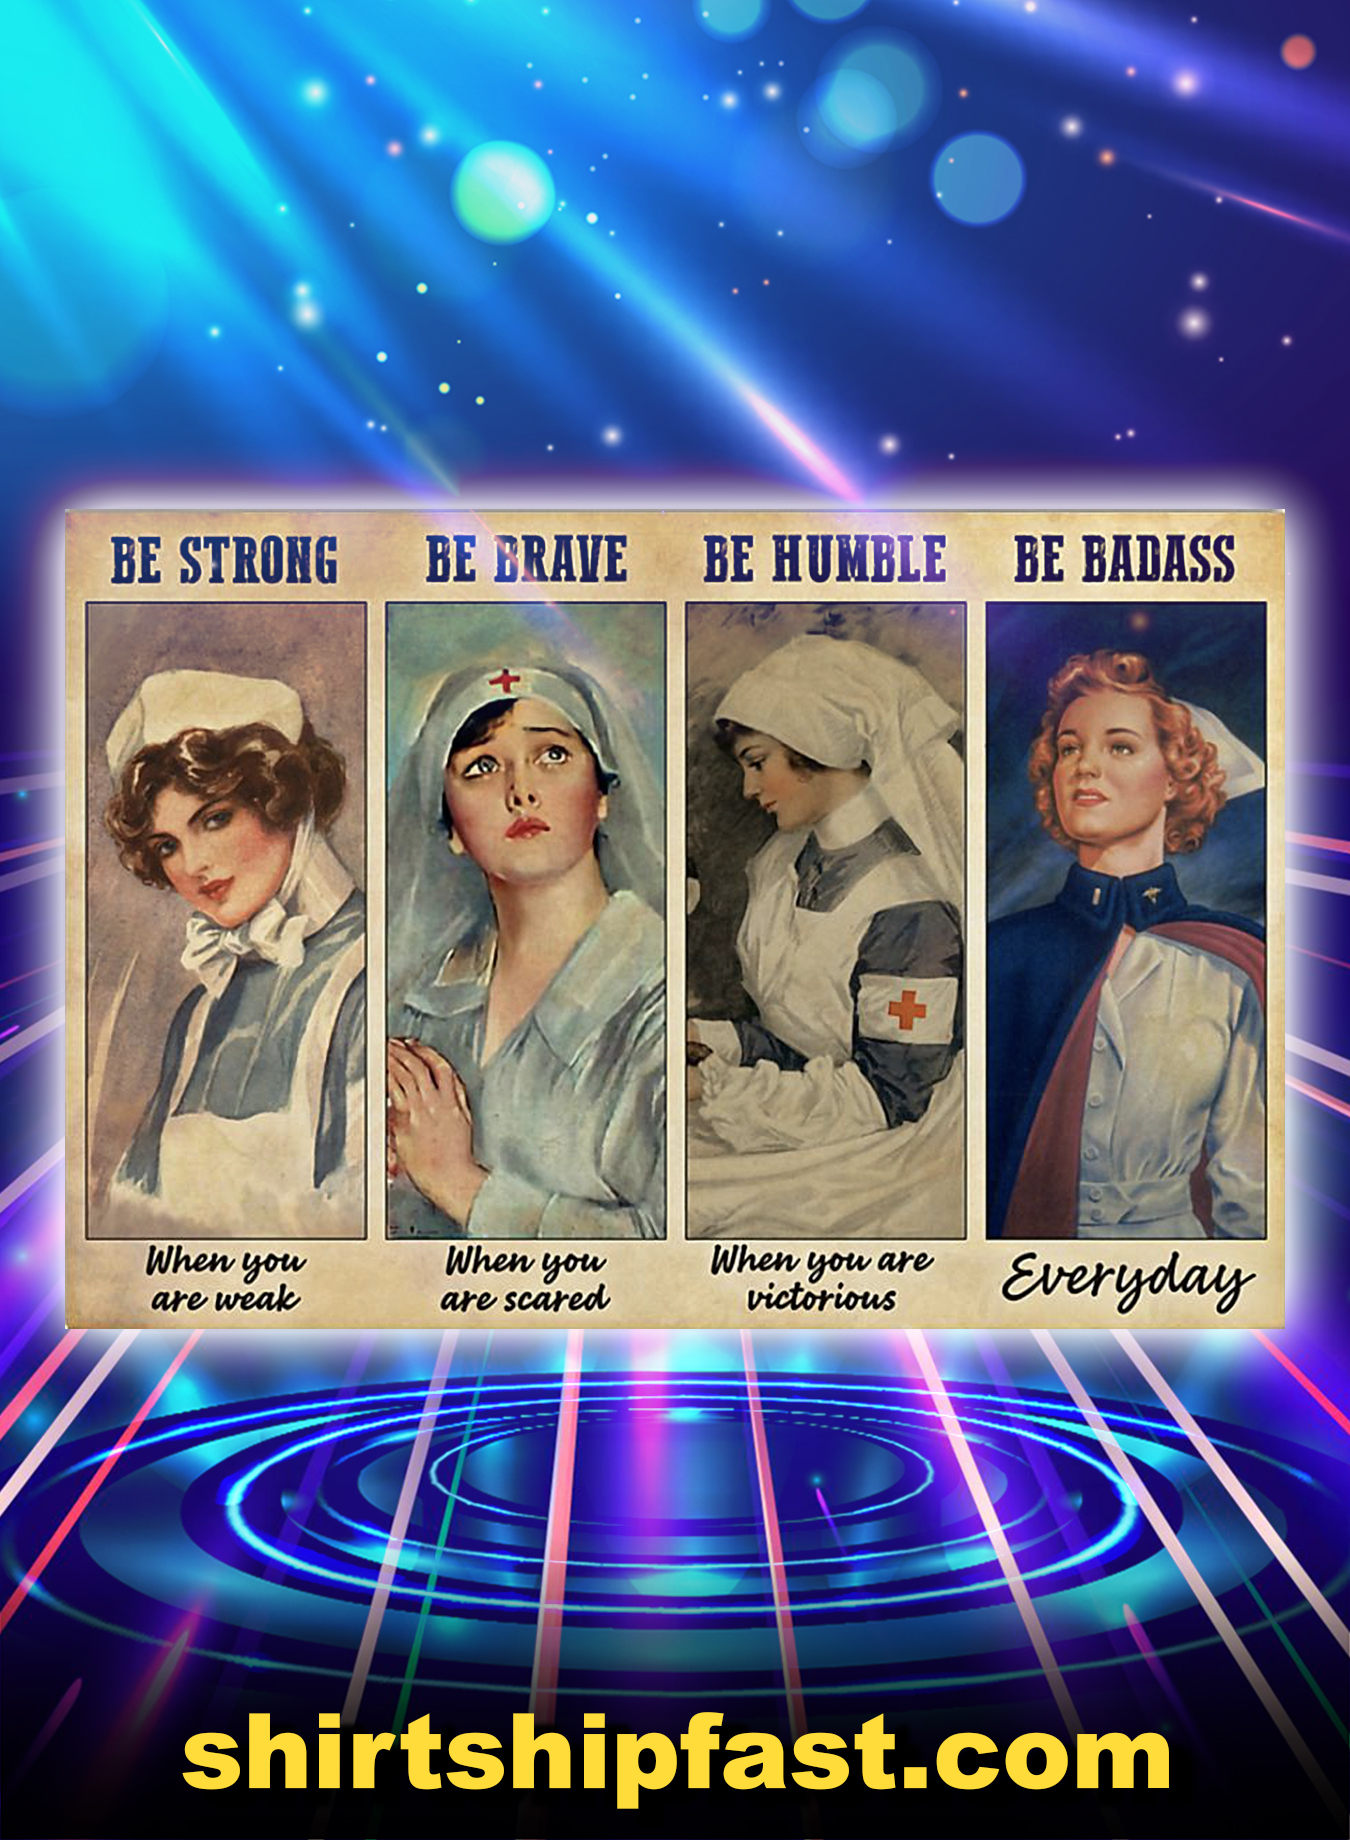 Female nurse be strong be brave be humble be badass poster - A2